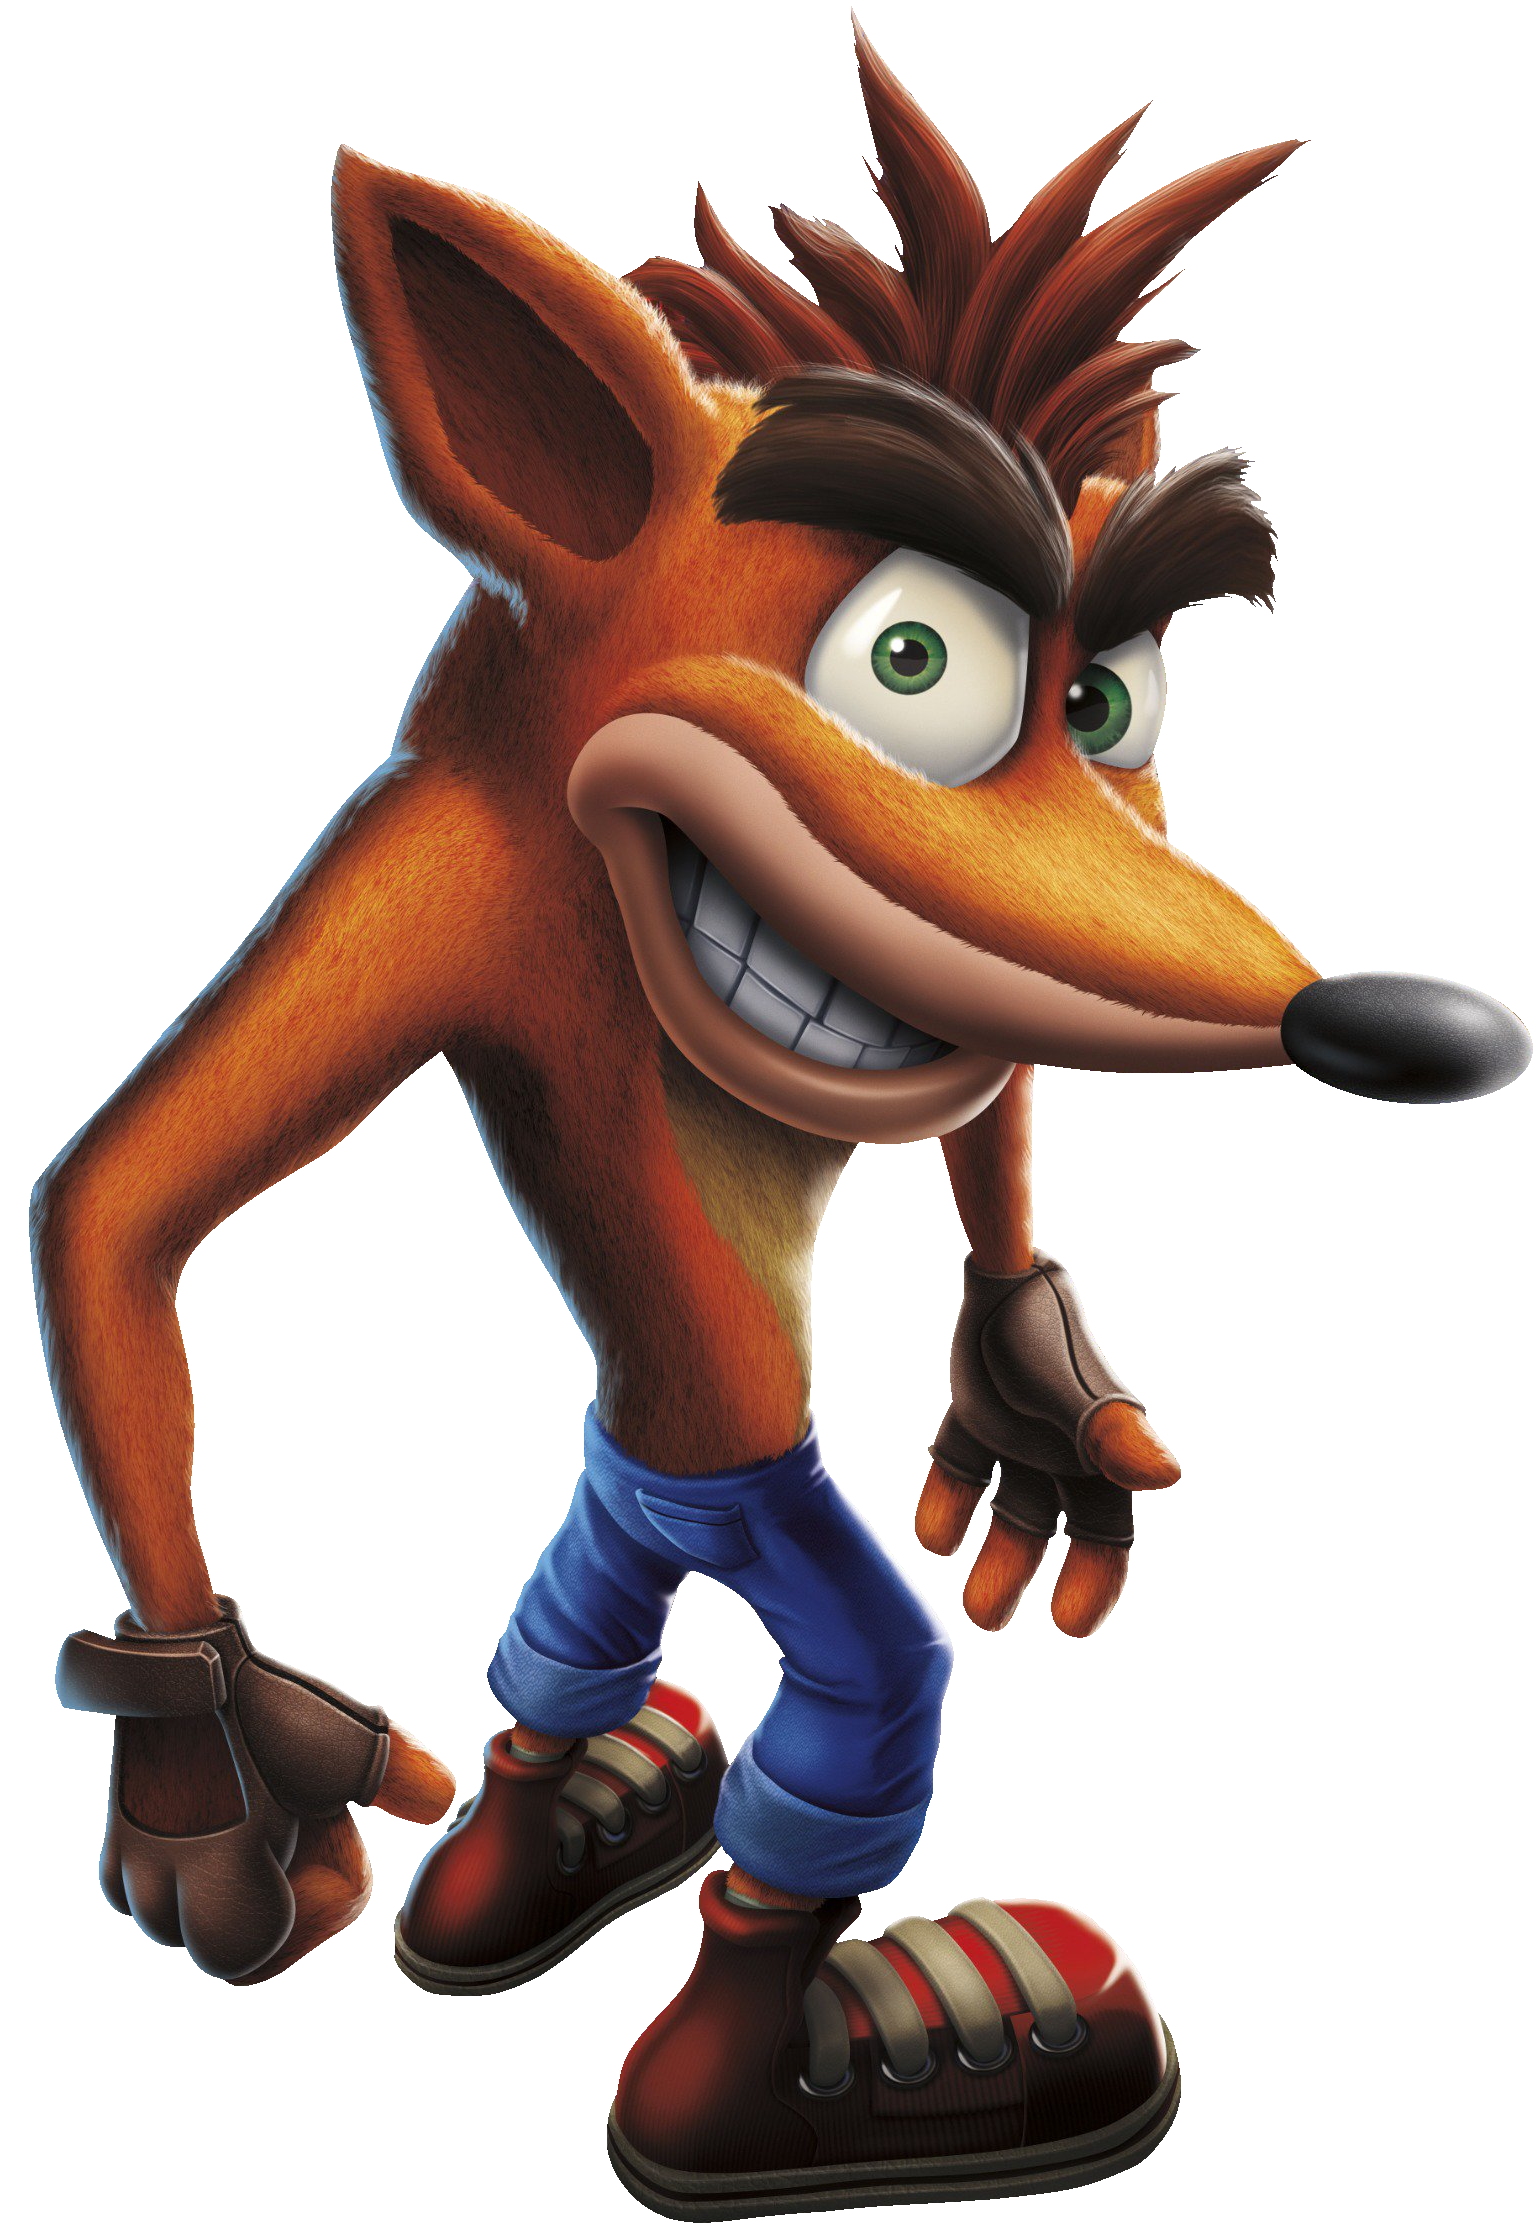 New Crash Bandicoot Game For Mobile Phones Is Out Crash Bandicoot Crash Bandicoot Tattoo Bandicoot